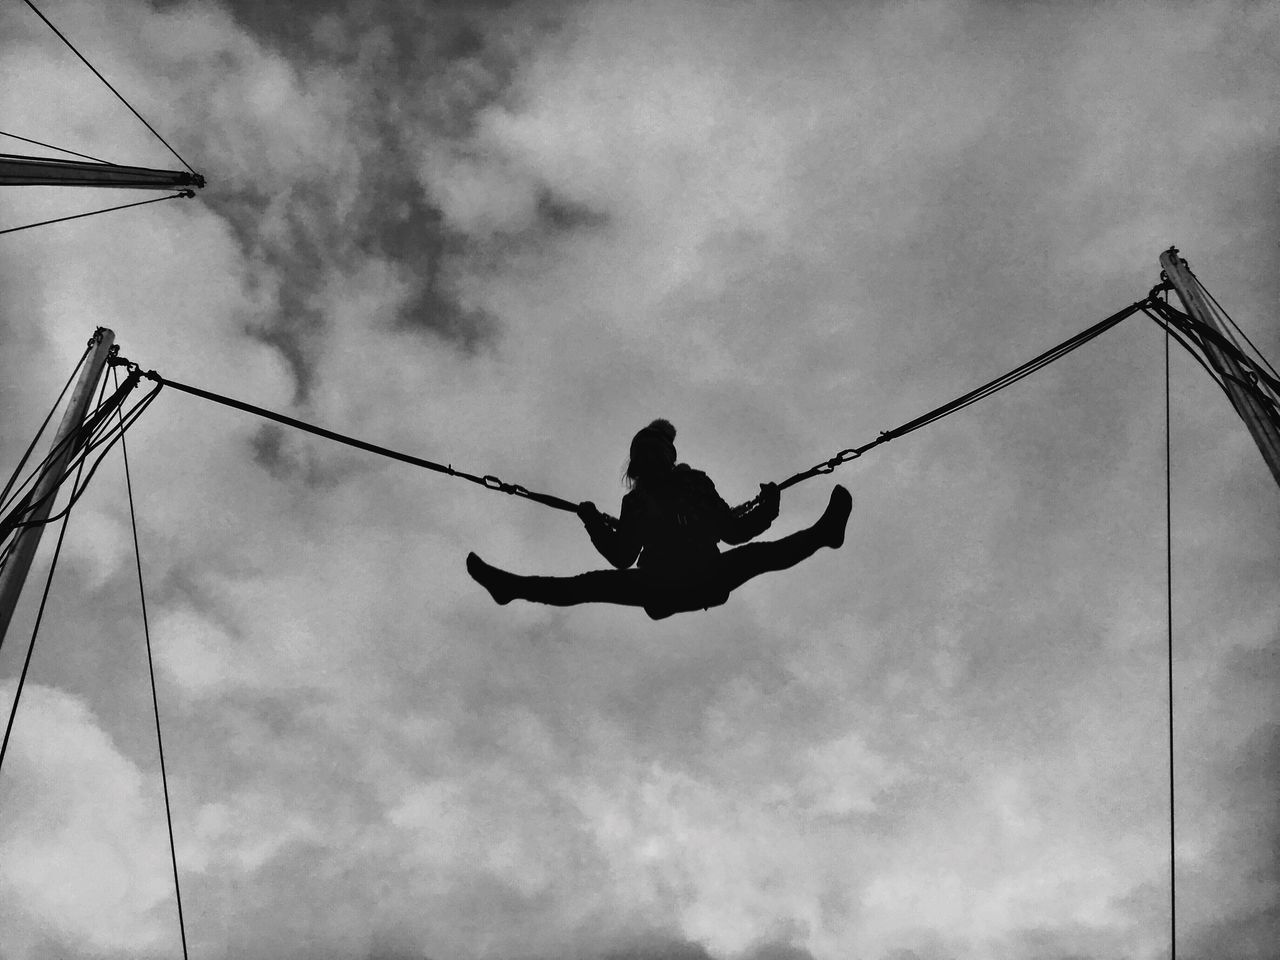 Low Angle View One Person Sky Cloud - Sky Mid-air Jumping Swing Outdoors Real People Day Young Adult People One Man Only Adult Low Angle View Black & White Cold Temperature Vacations Leisure Activity